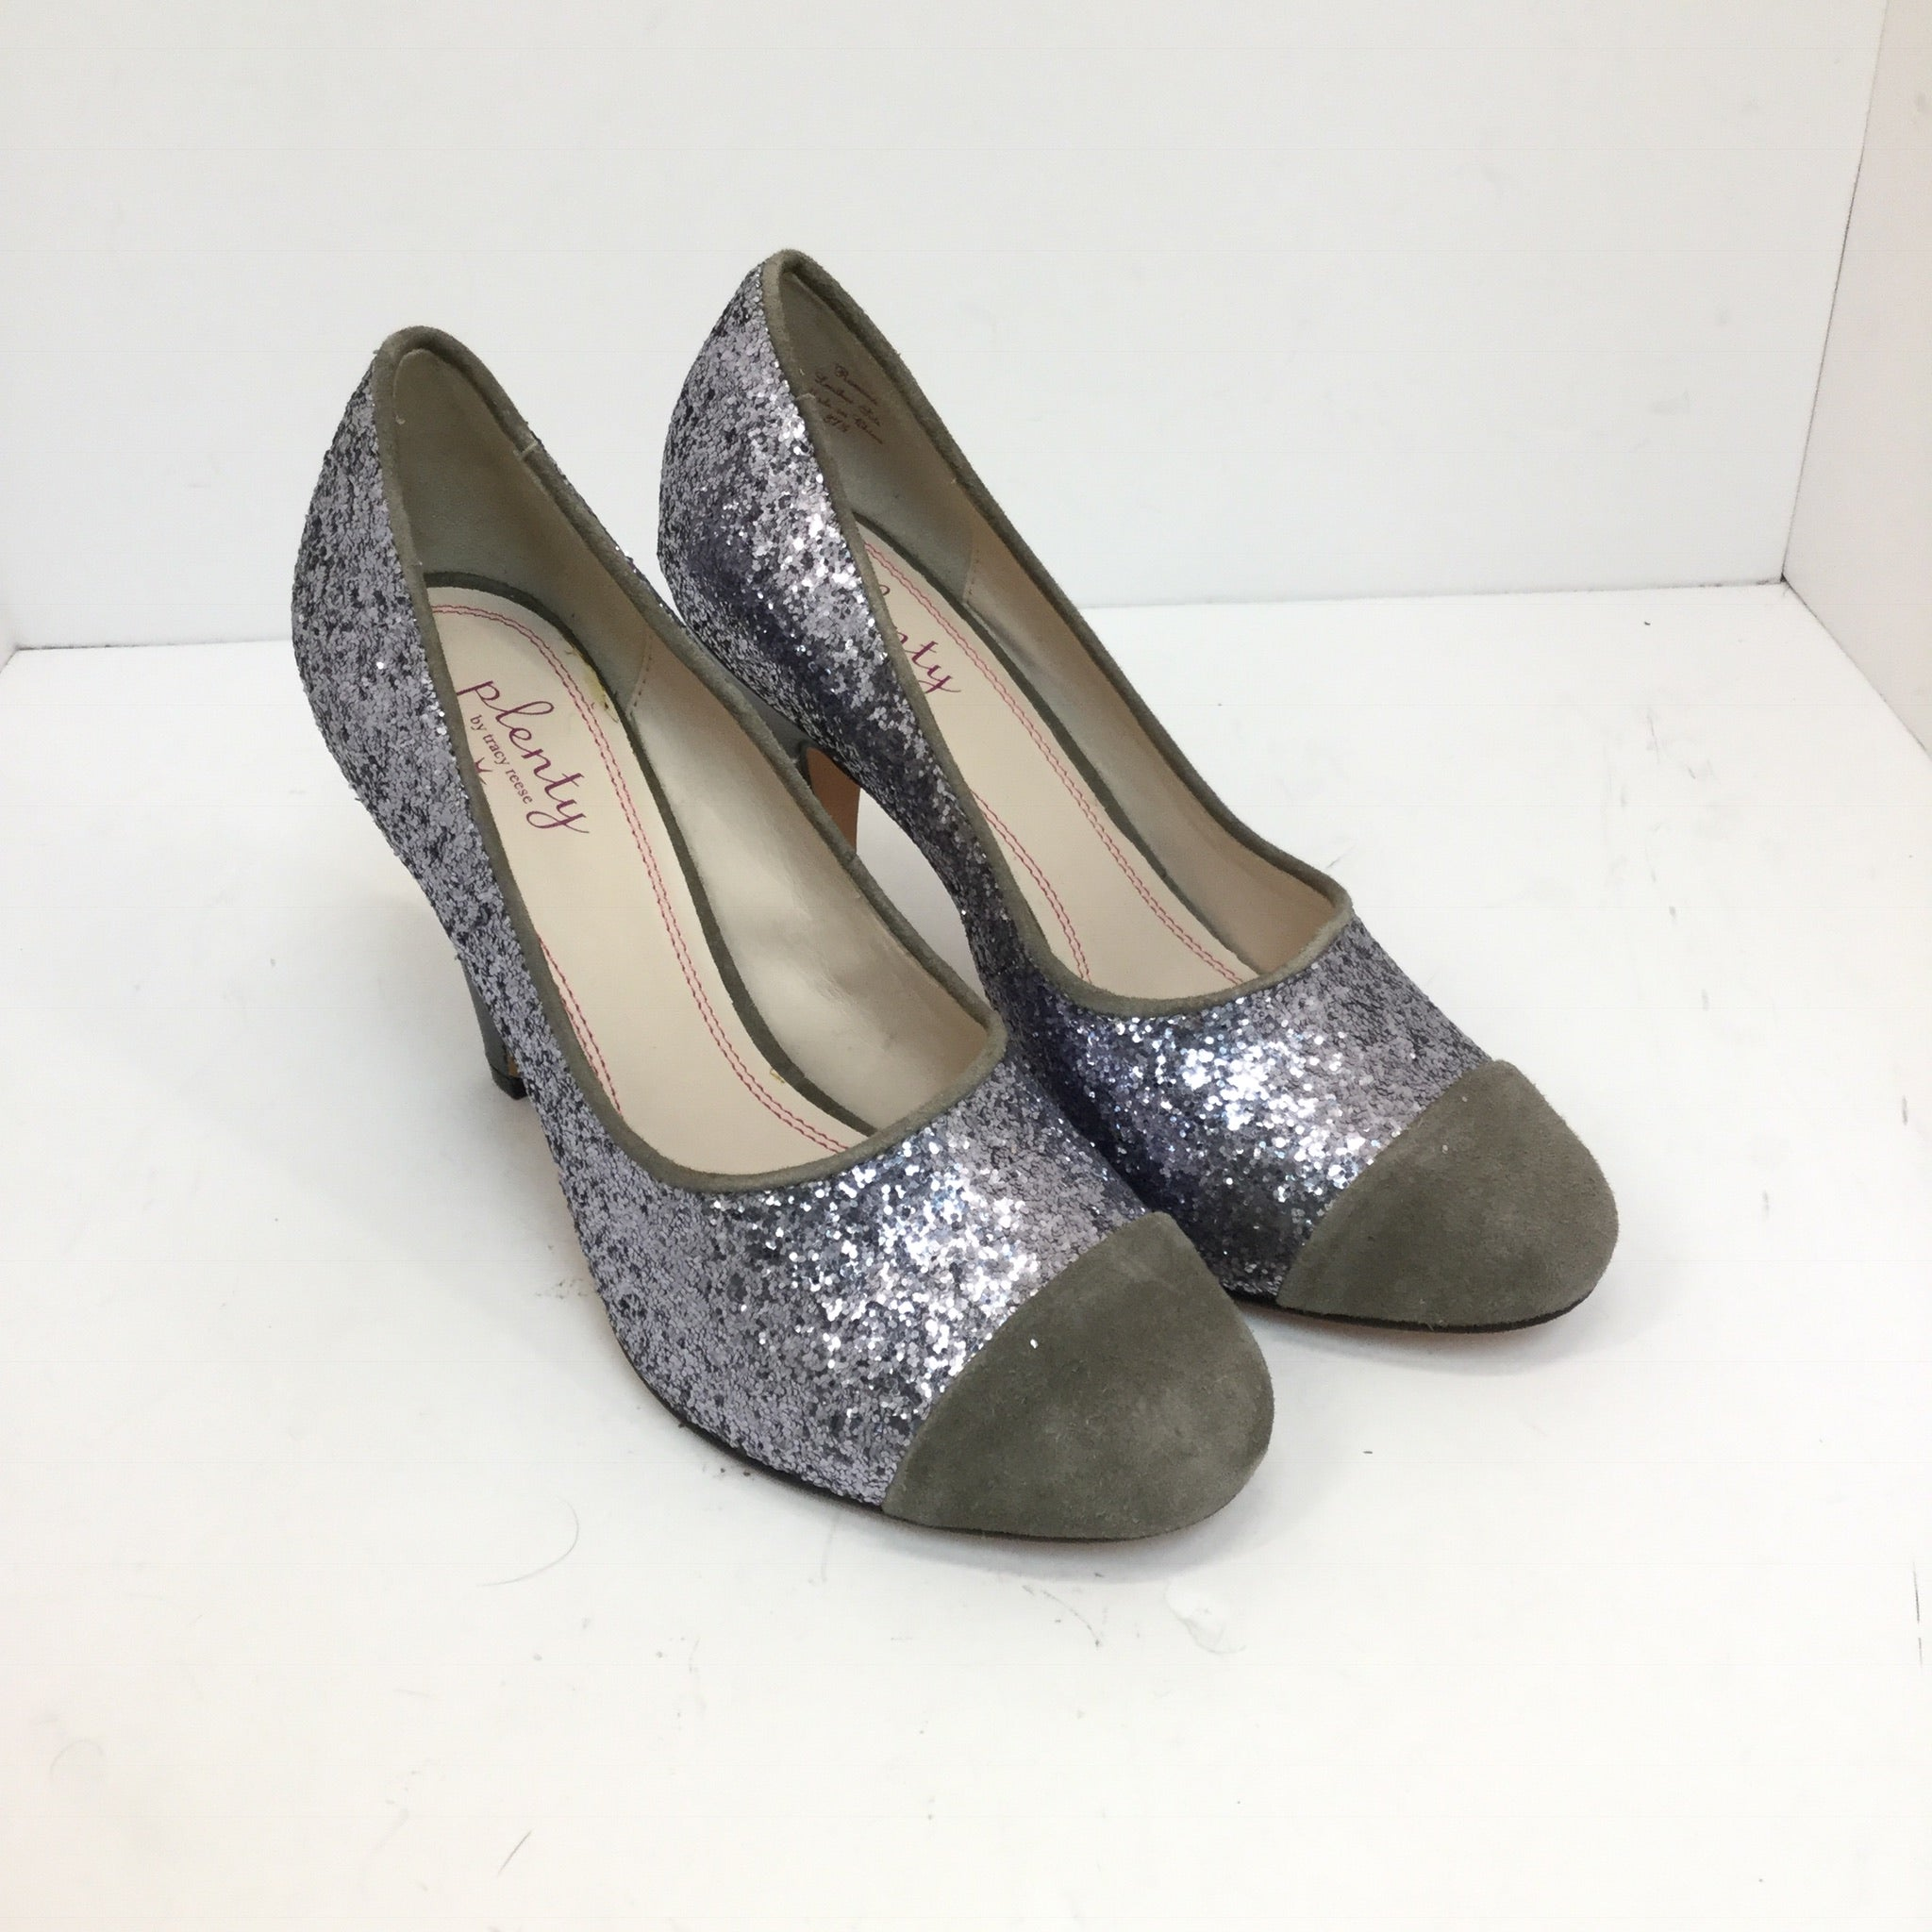 Plenty by Tracy Reese Ramona Glitter Pumps size 37.5